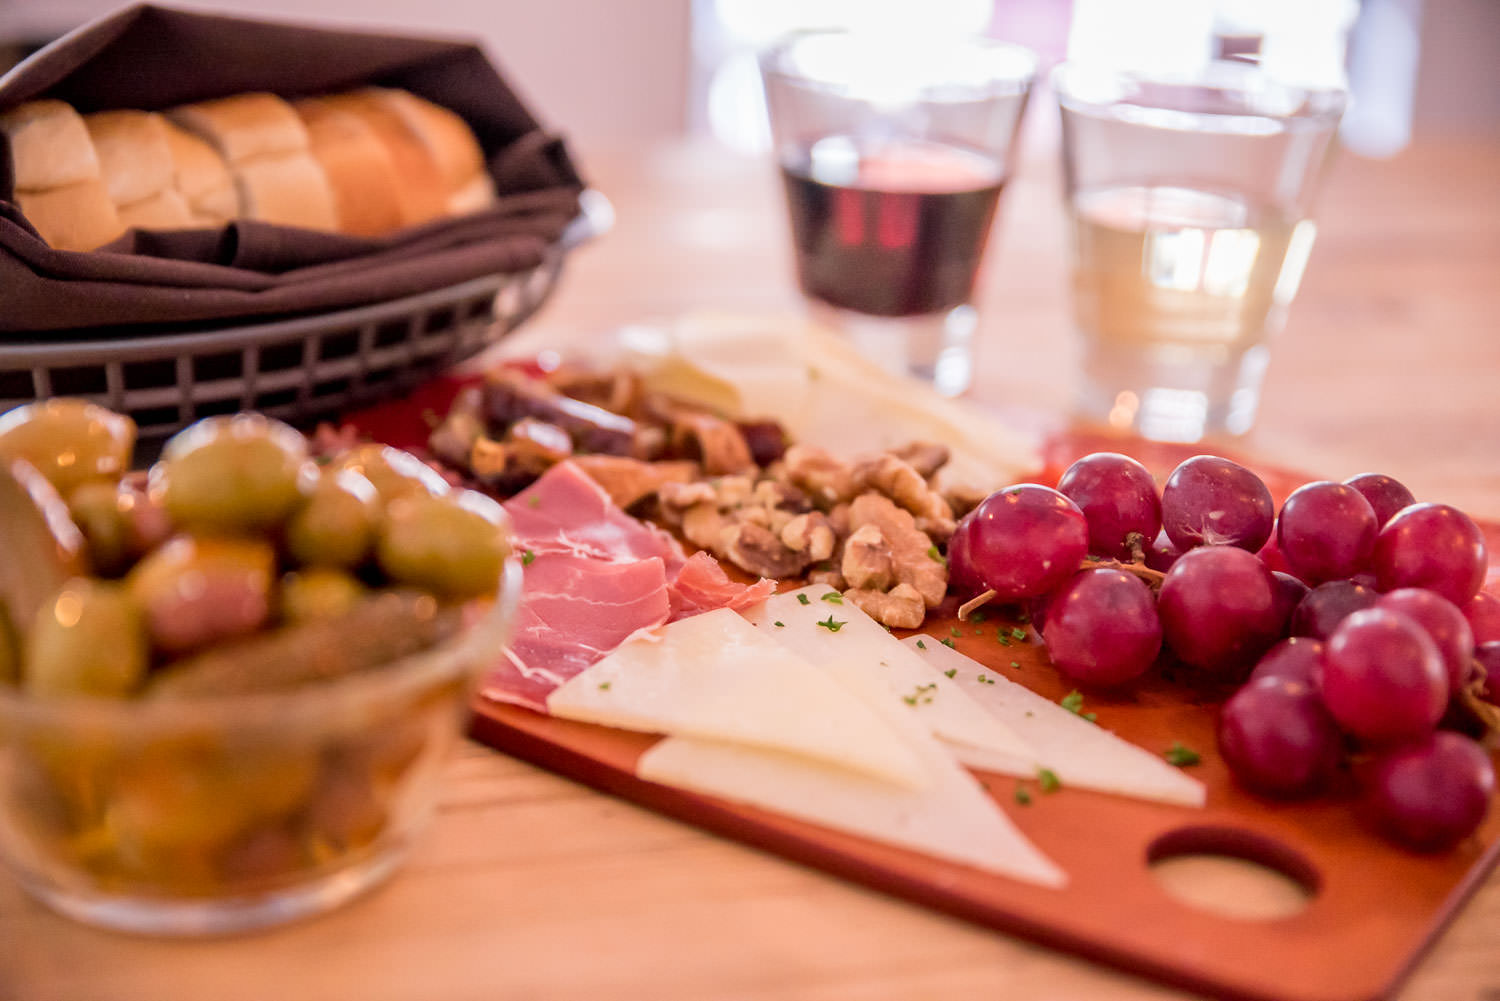 Queso, Jamon, y Aceitunas - Ham & Cheese plate with mixed marinated olives